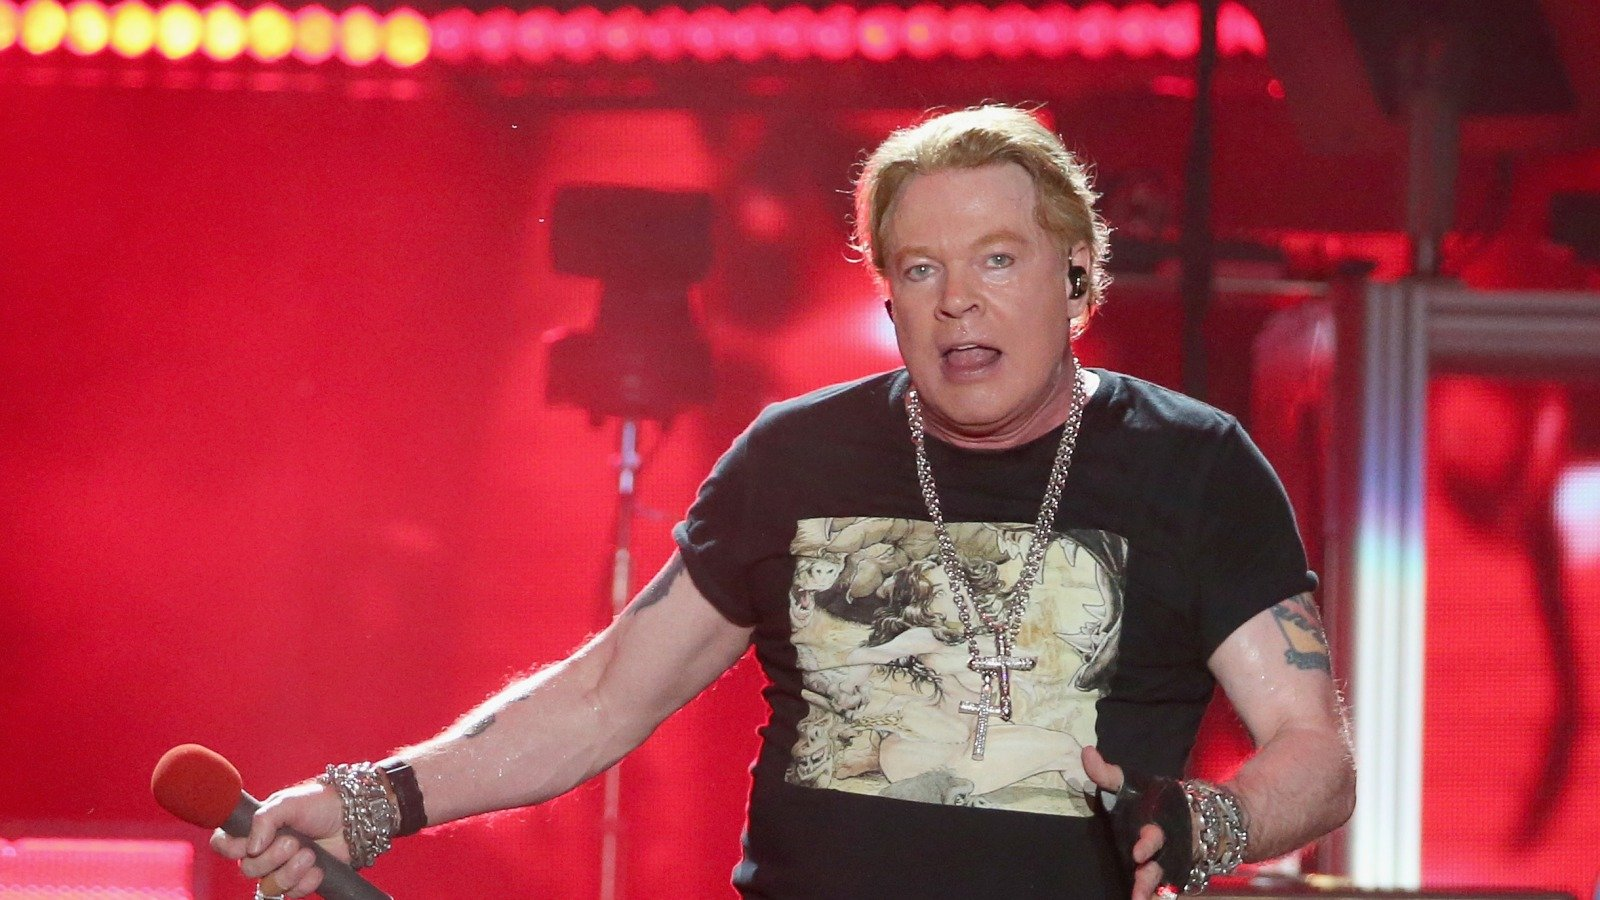 Why Axl Rose Considers His Stepfather The Most Dangerous Man He's Ever Met